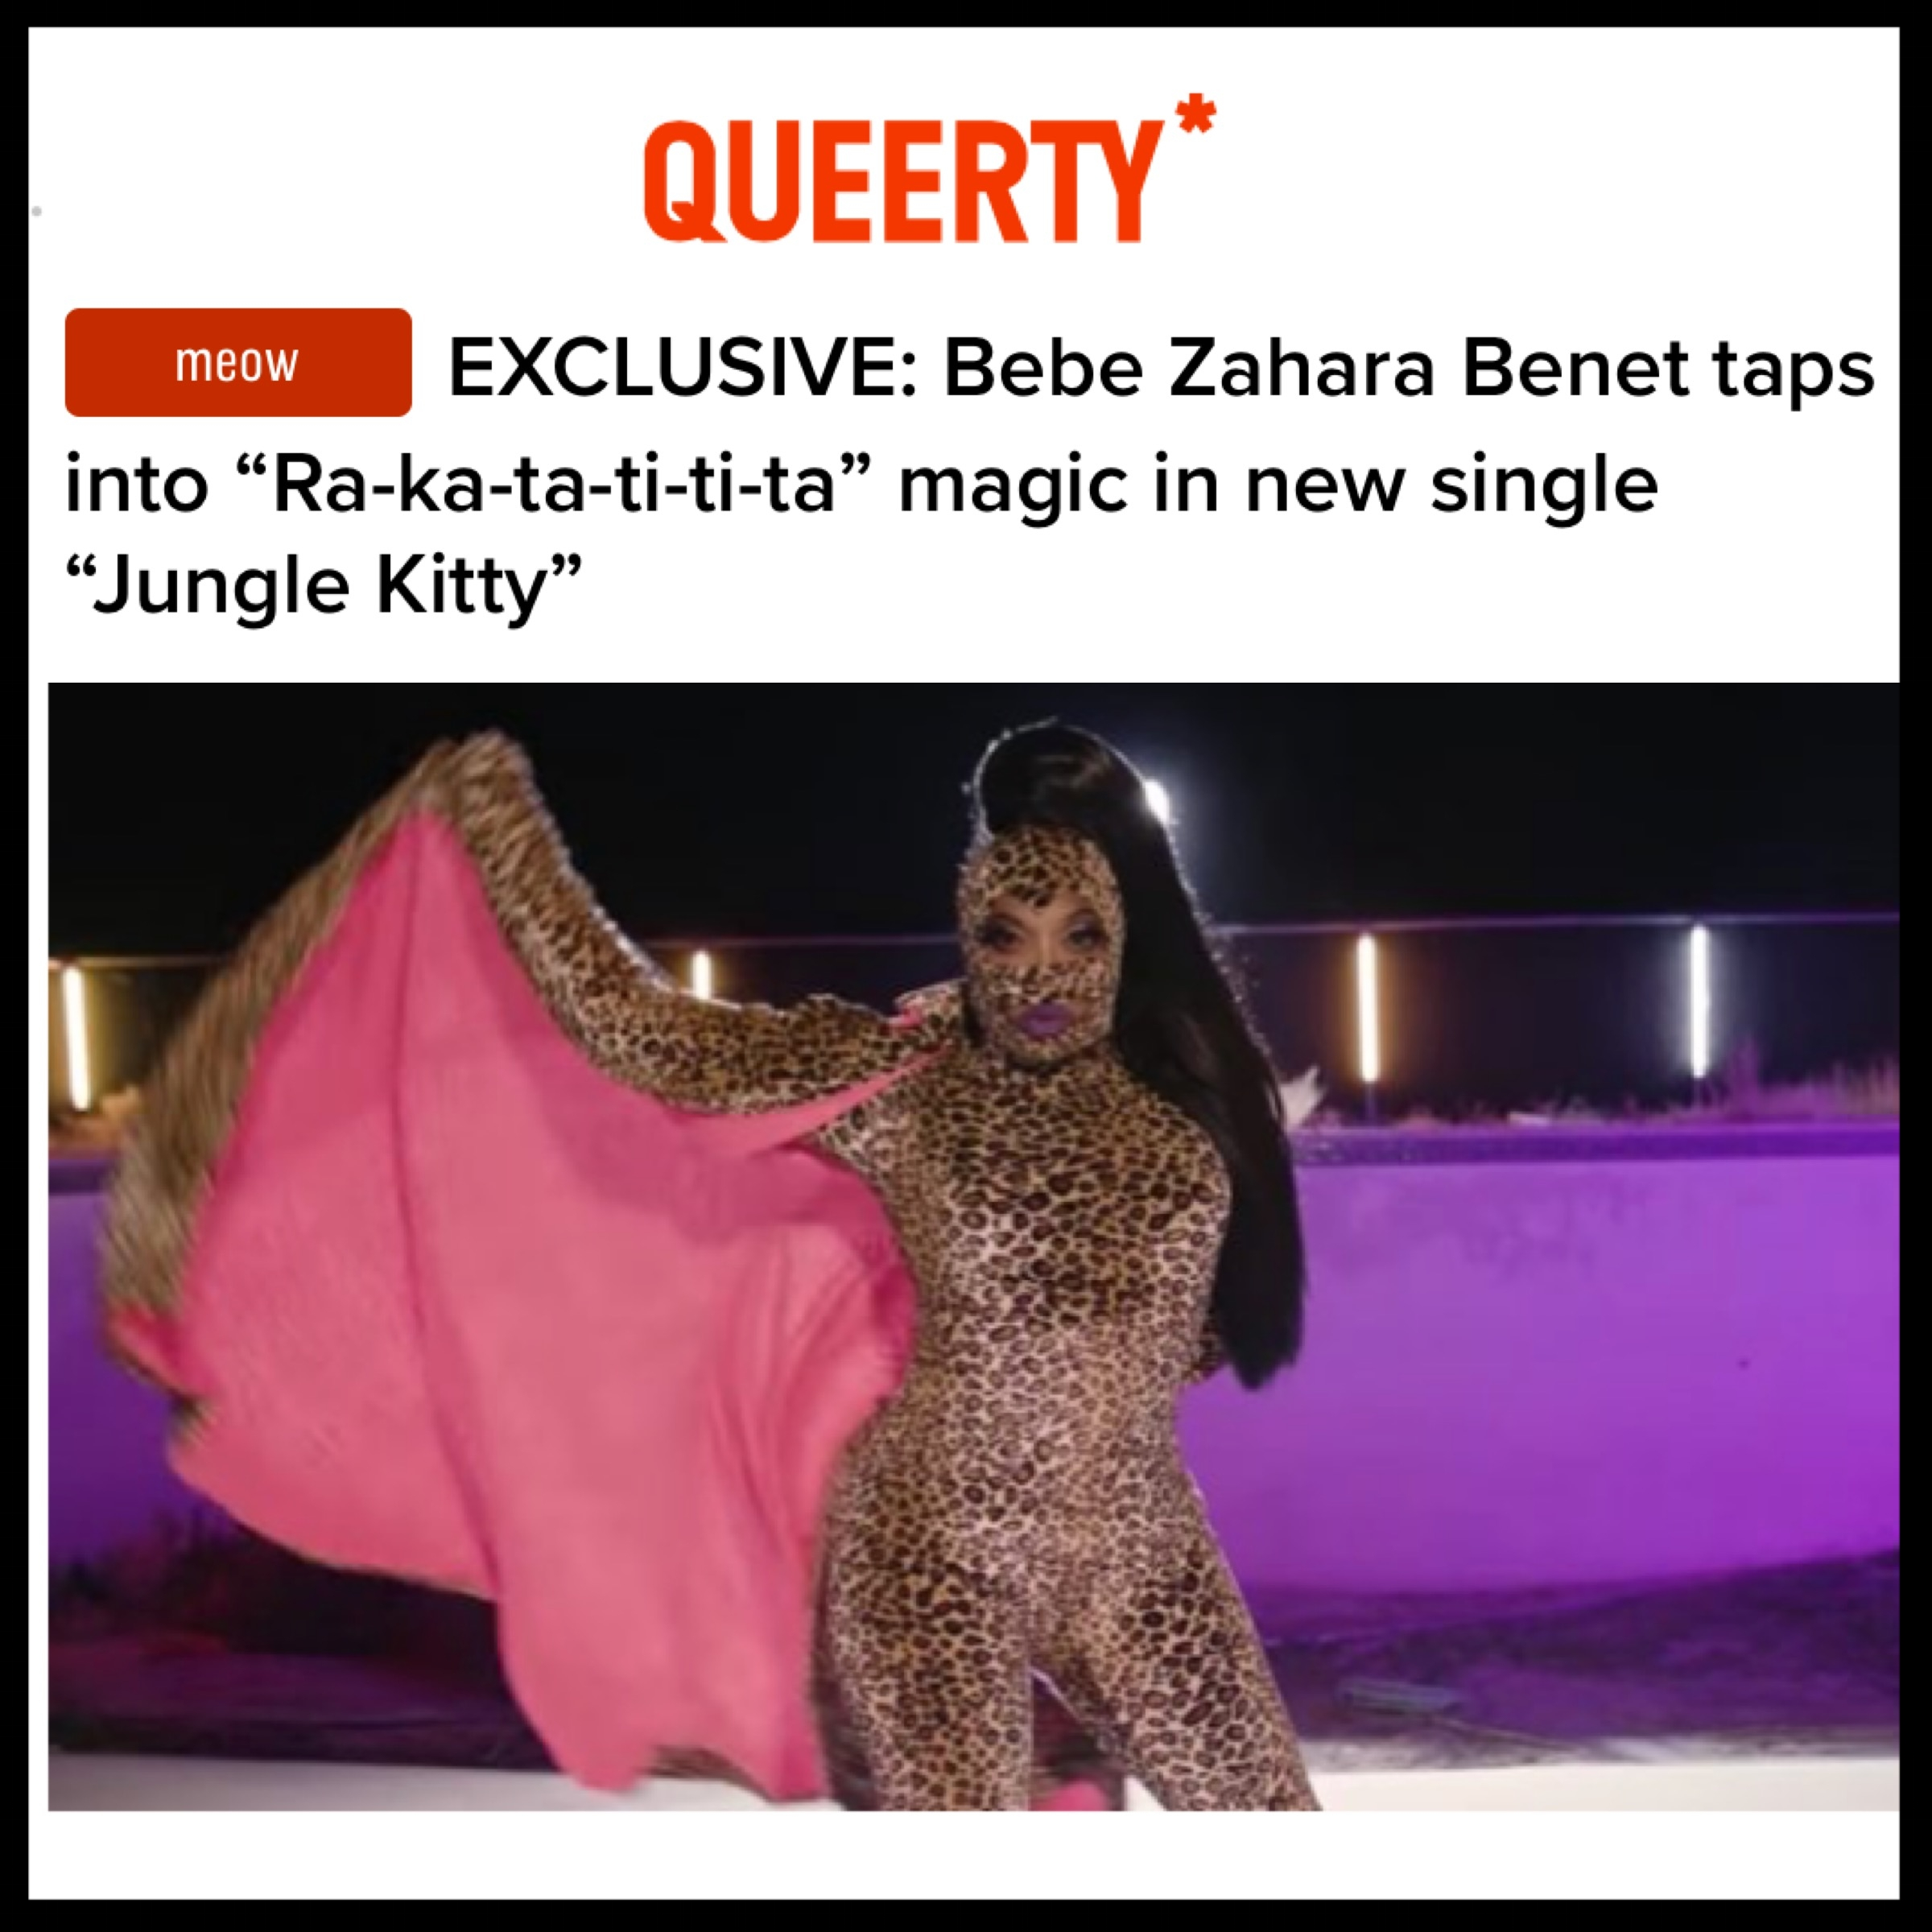 QUEERTY - BEBE ZAHARA BENET (JUNGLE KITTY)